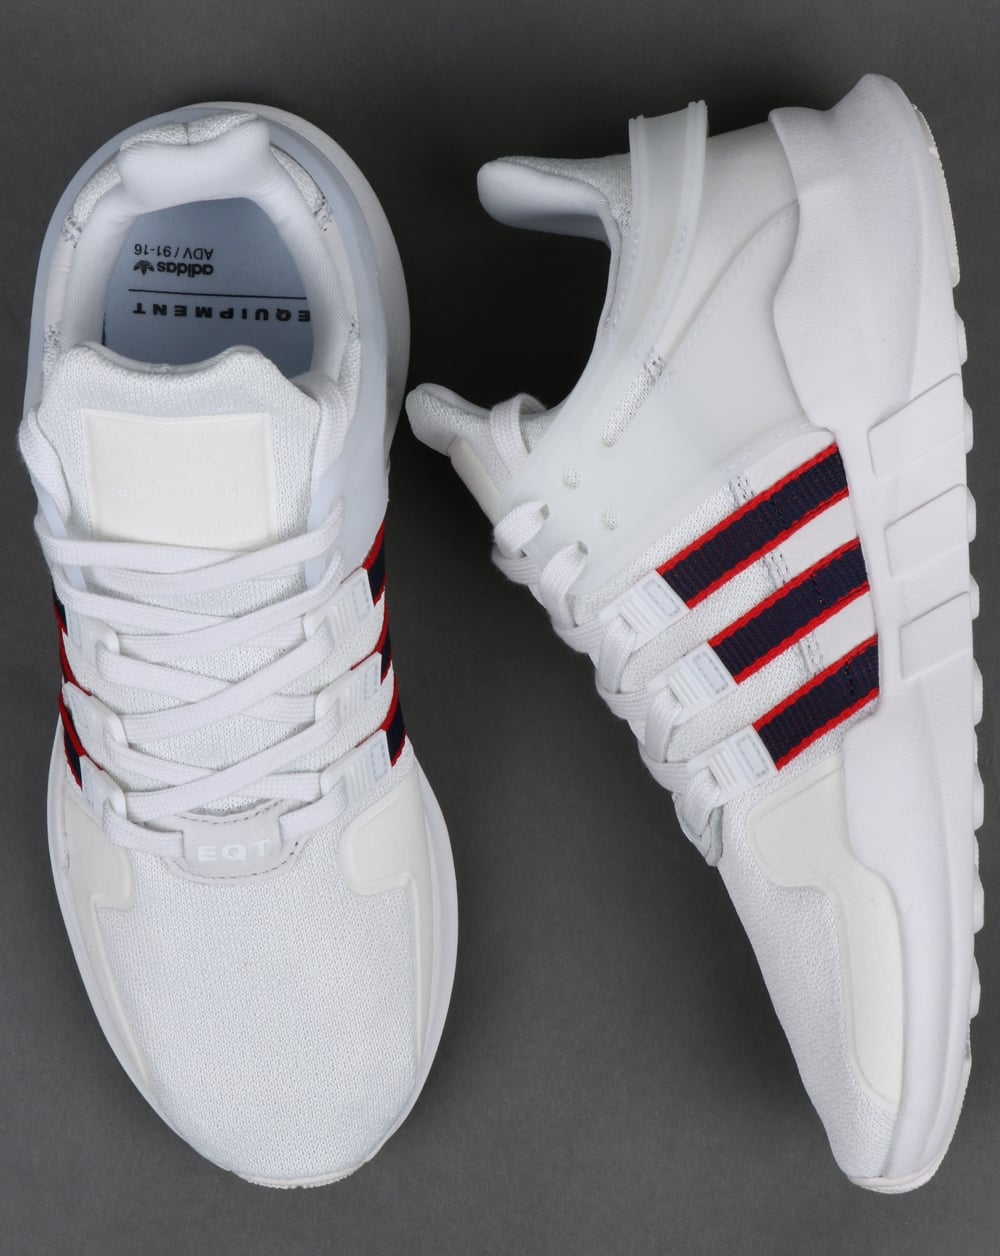 best sneakers fd77f 5c3fc Adidas EQT Support ADV Trainers Crystal White Navy Scarlet